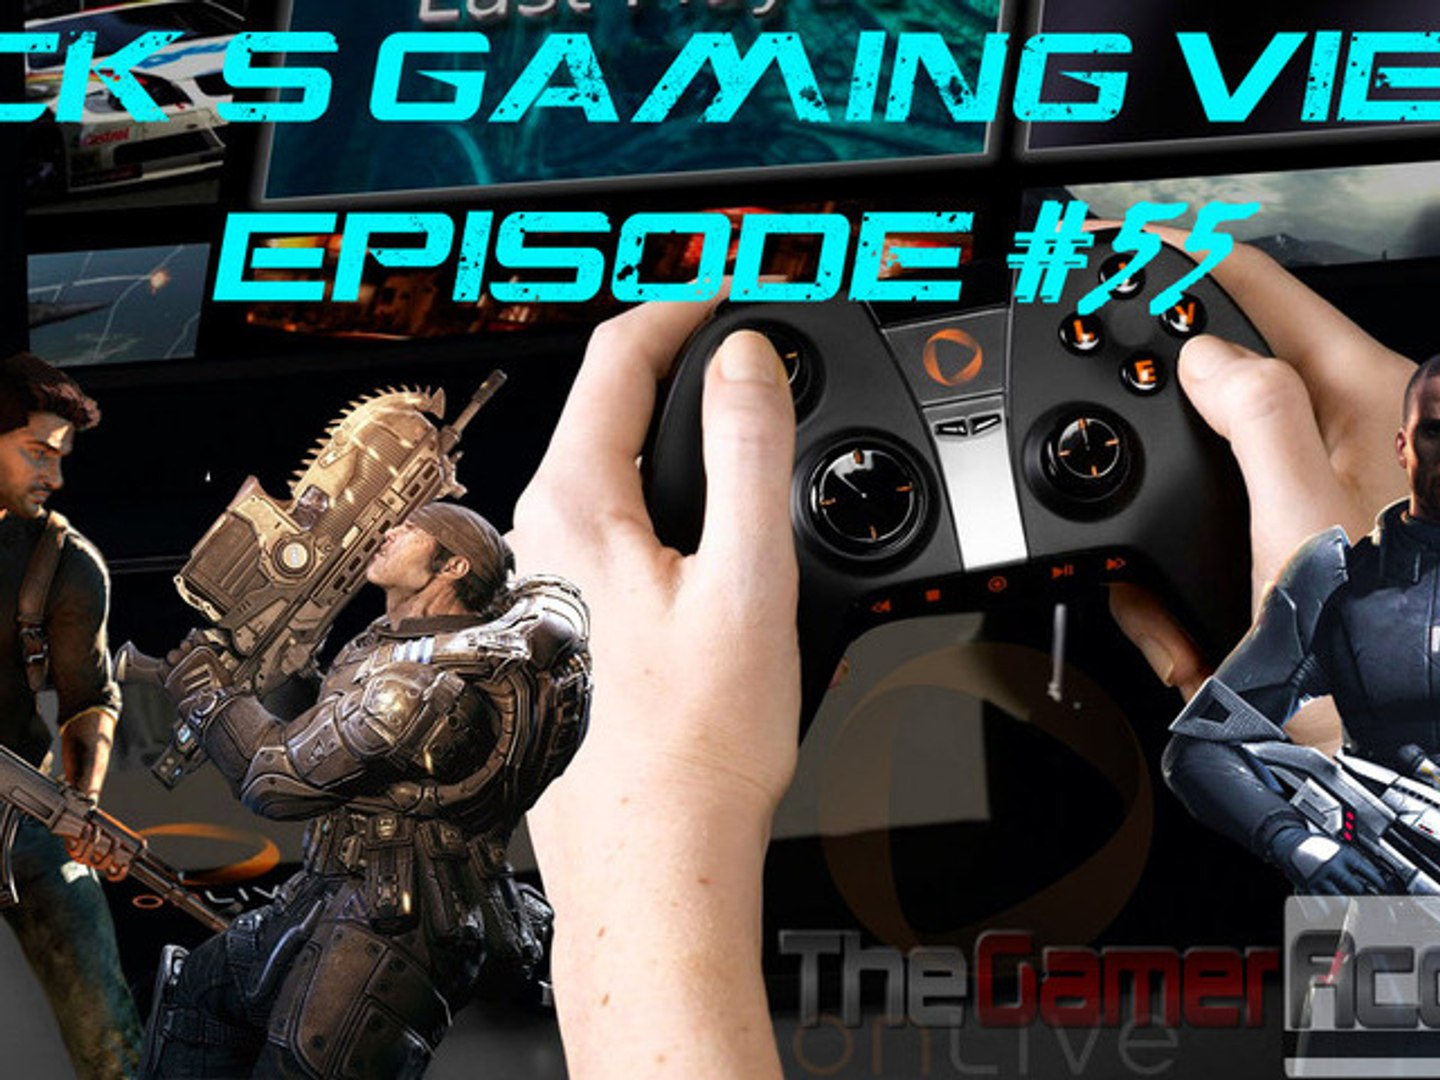 Uncharted and/or Gears of War to Venture Cloud Gaming – Nick's Gaming View Episode #55